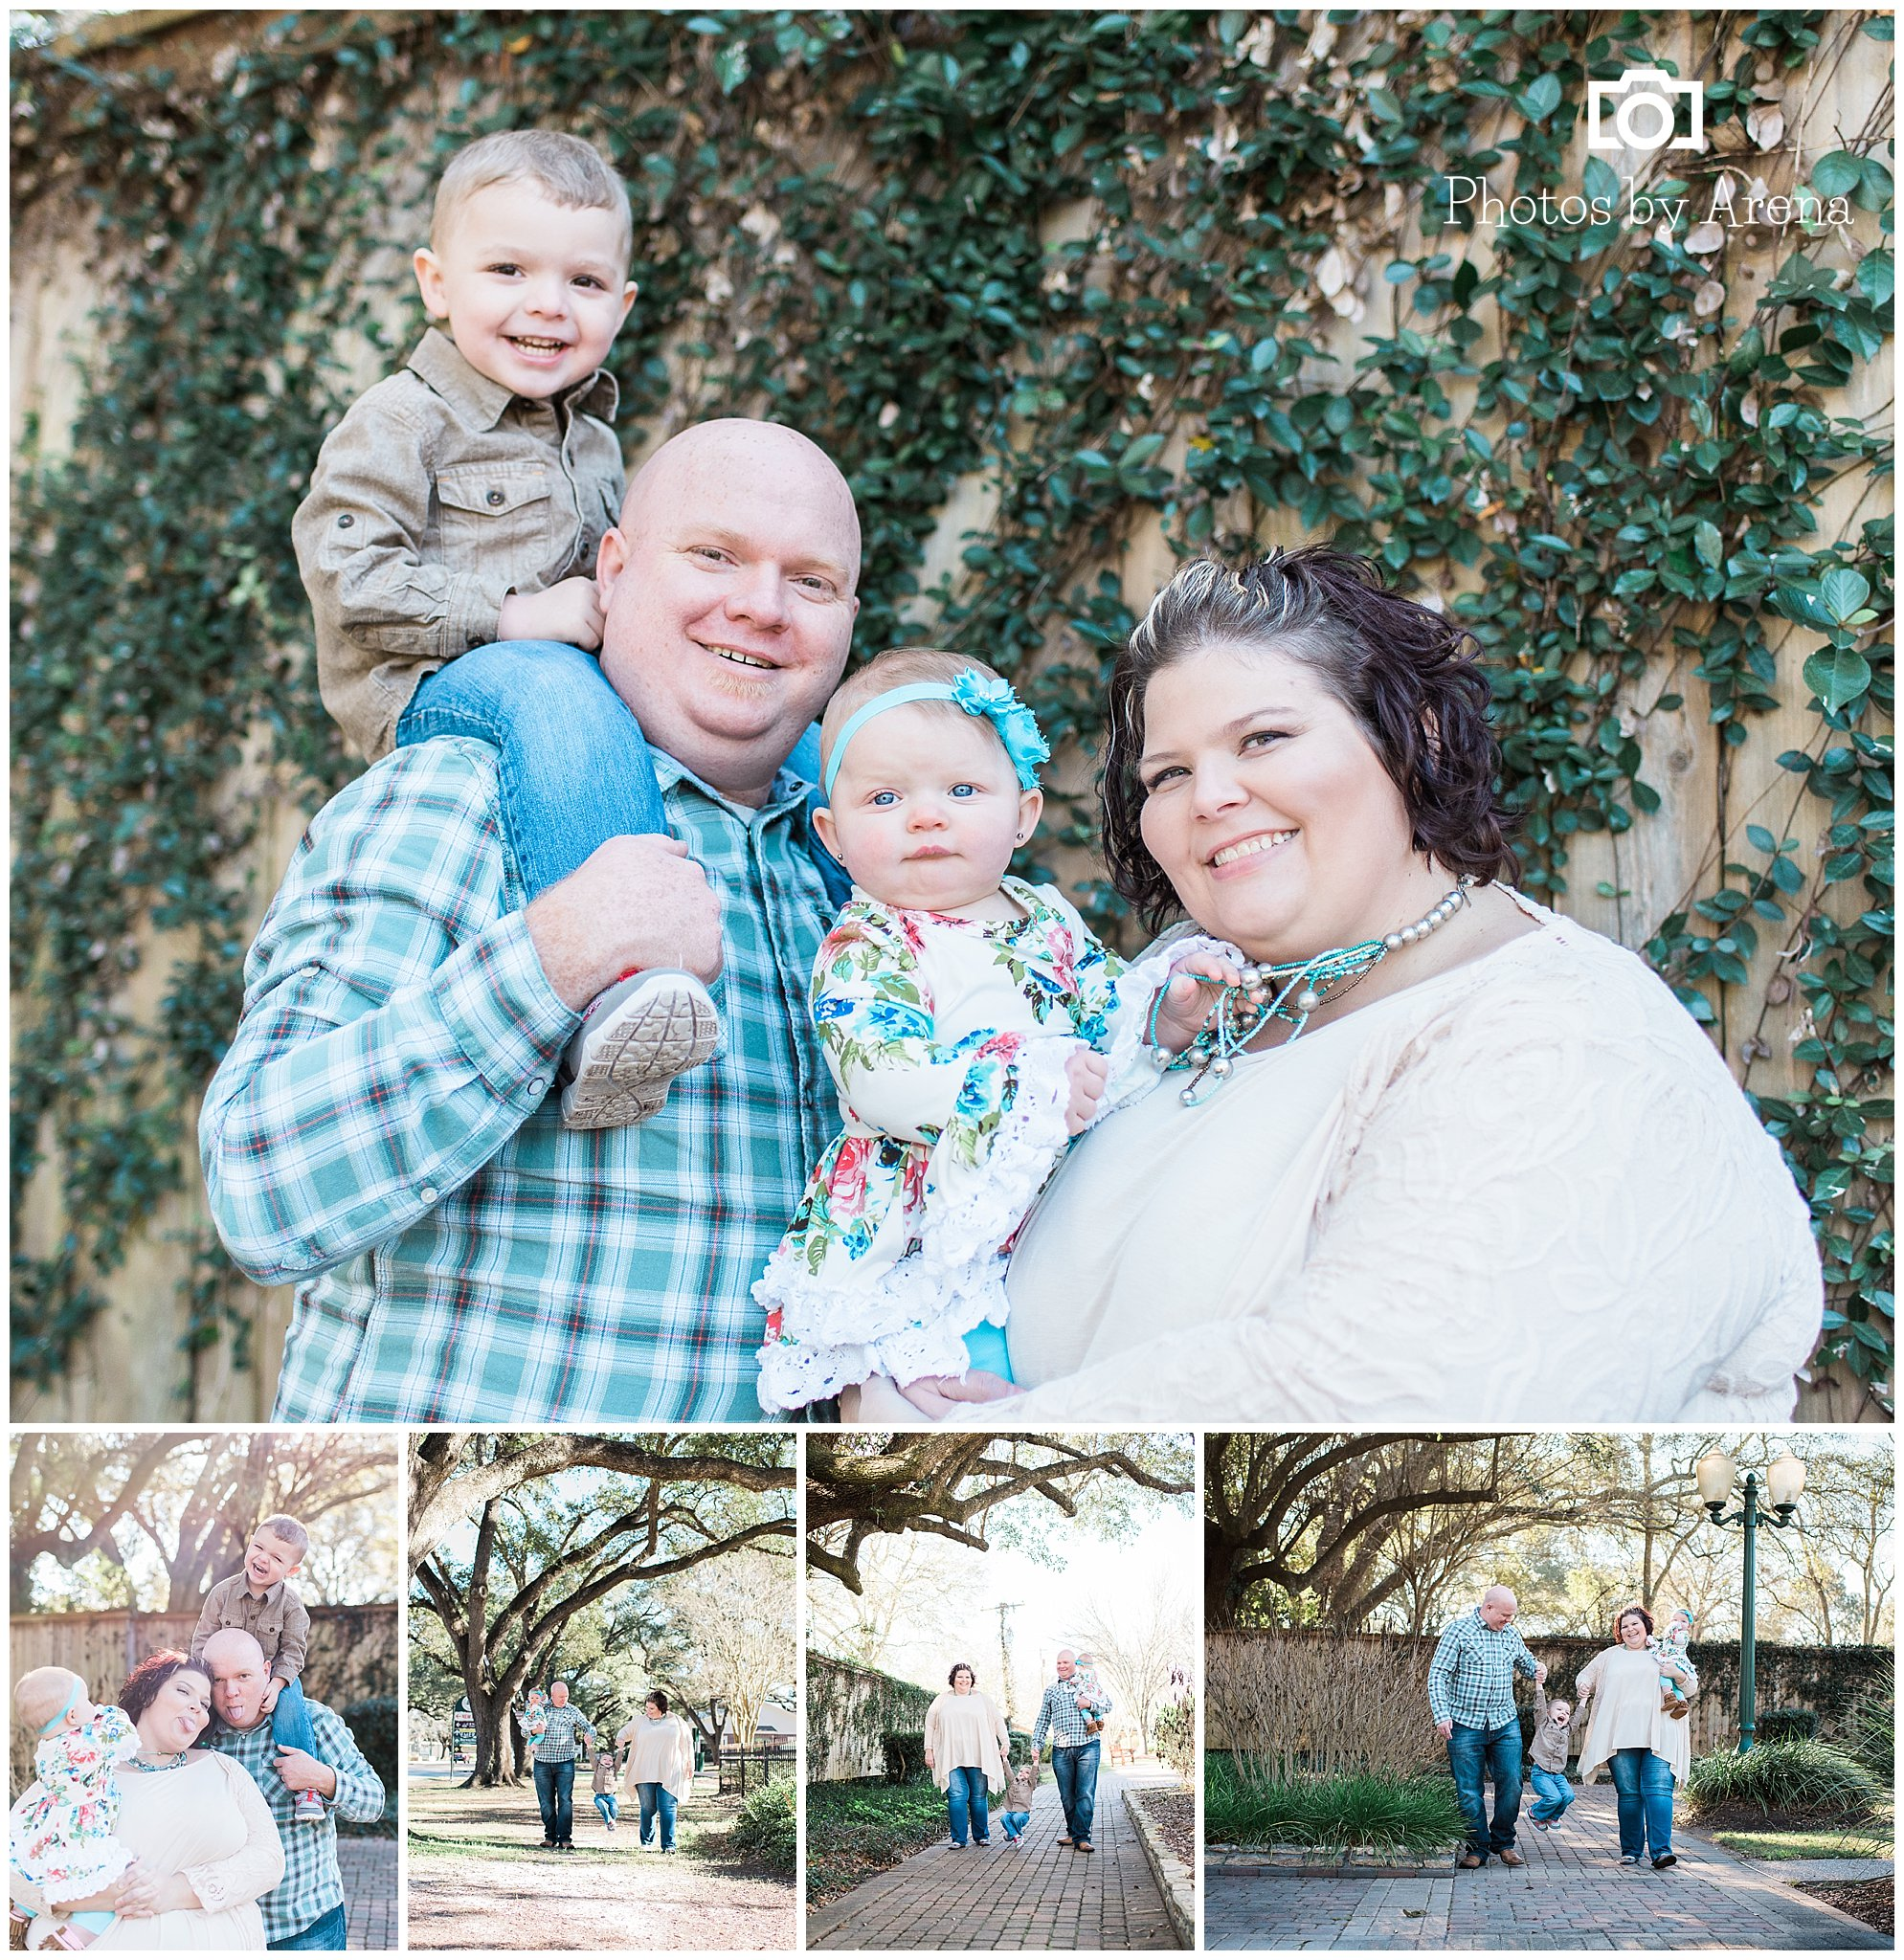 We were able to get in some family shots too.  Marcus had a blast swinging from Mom and Dad!